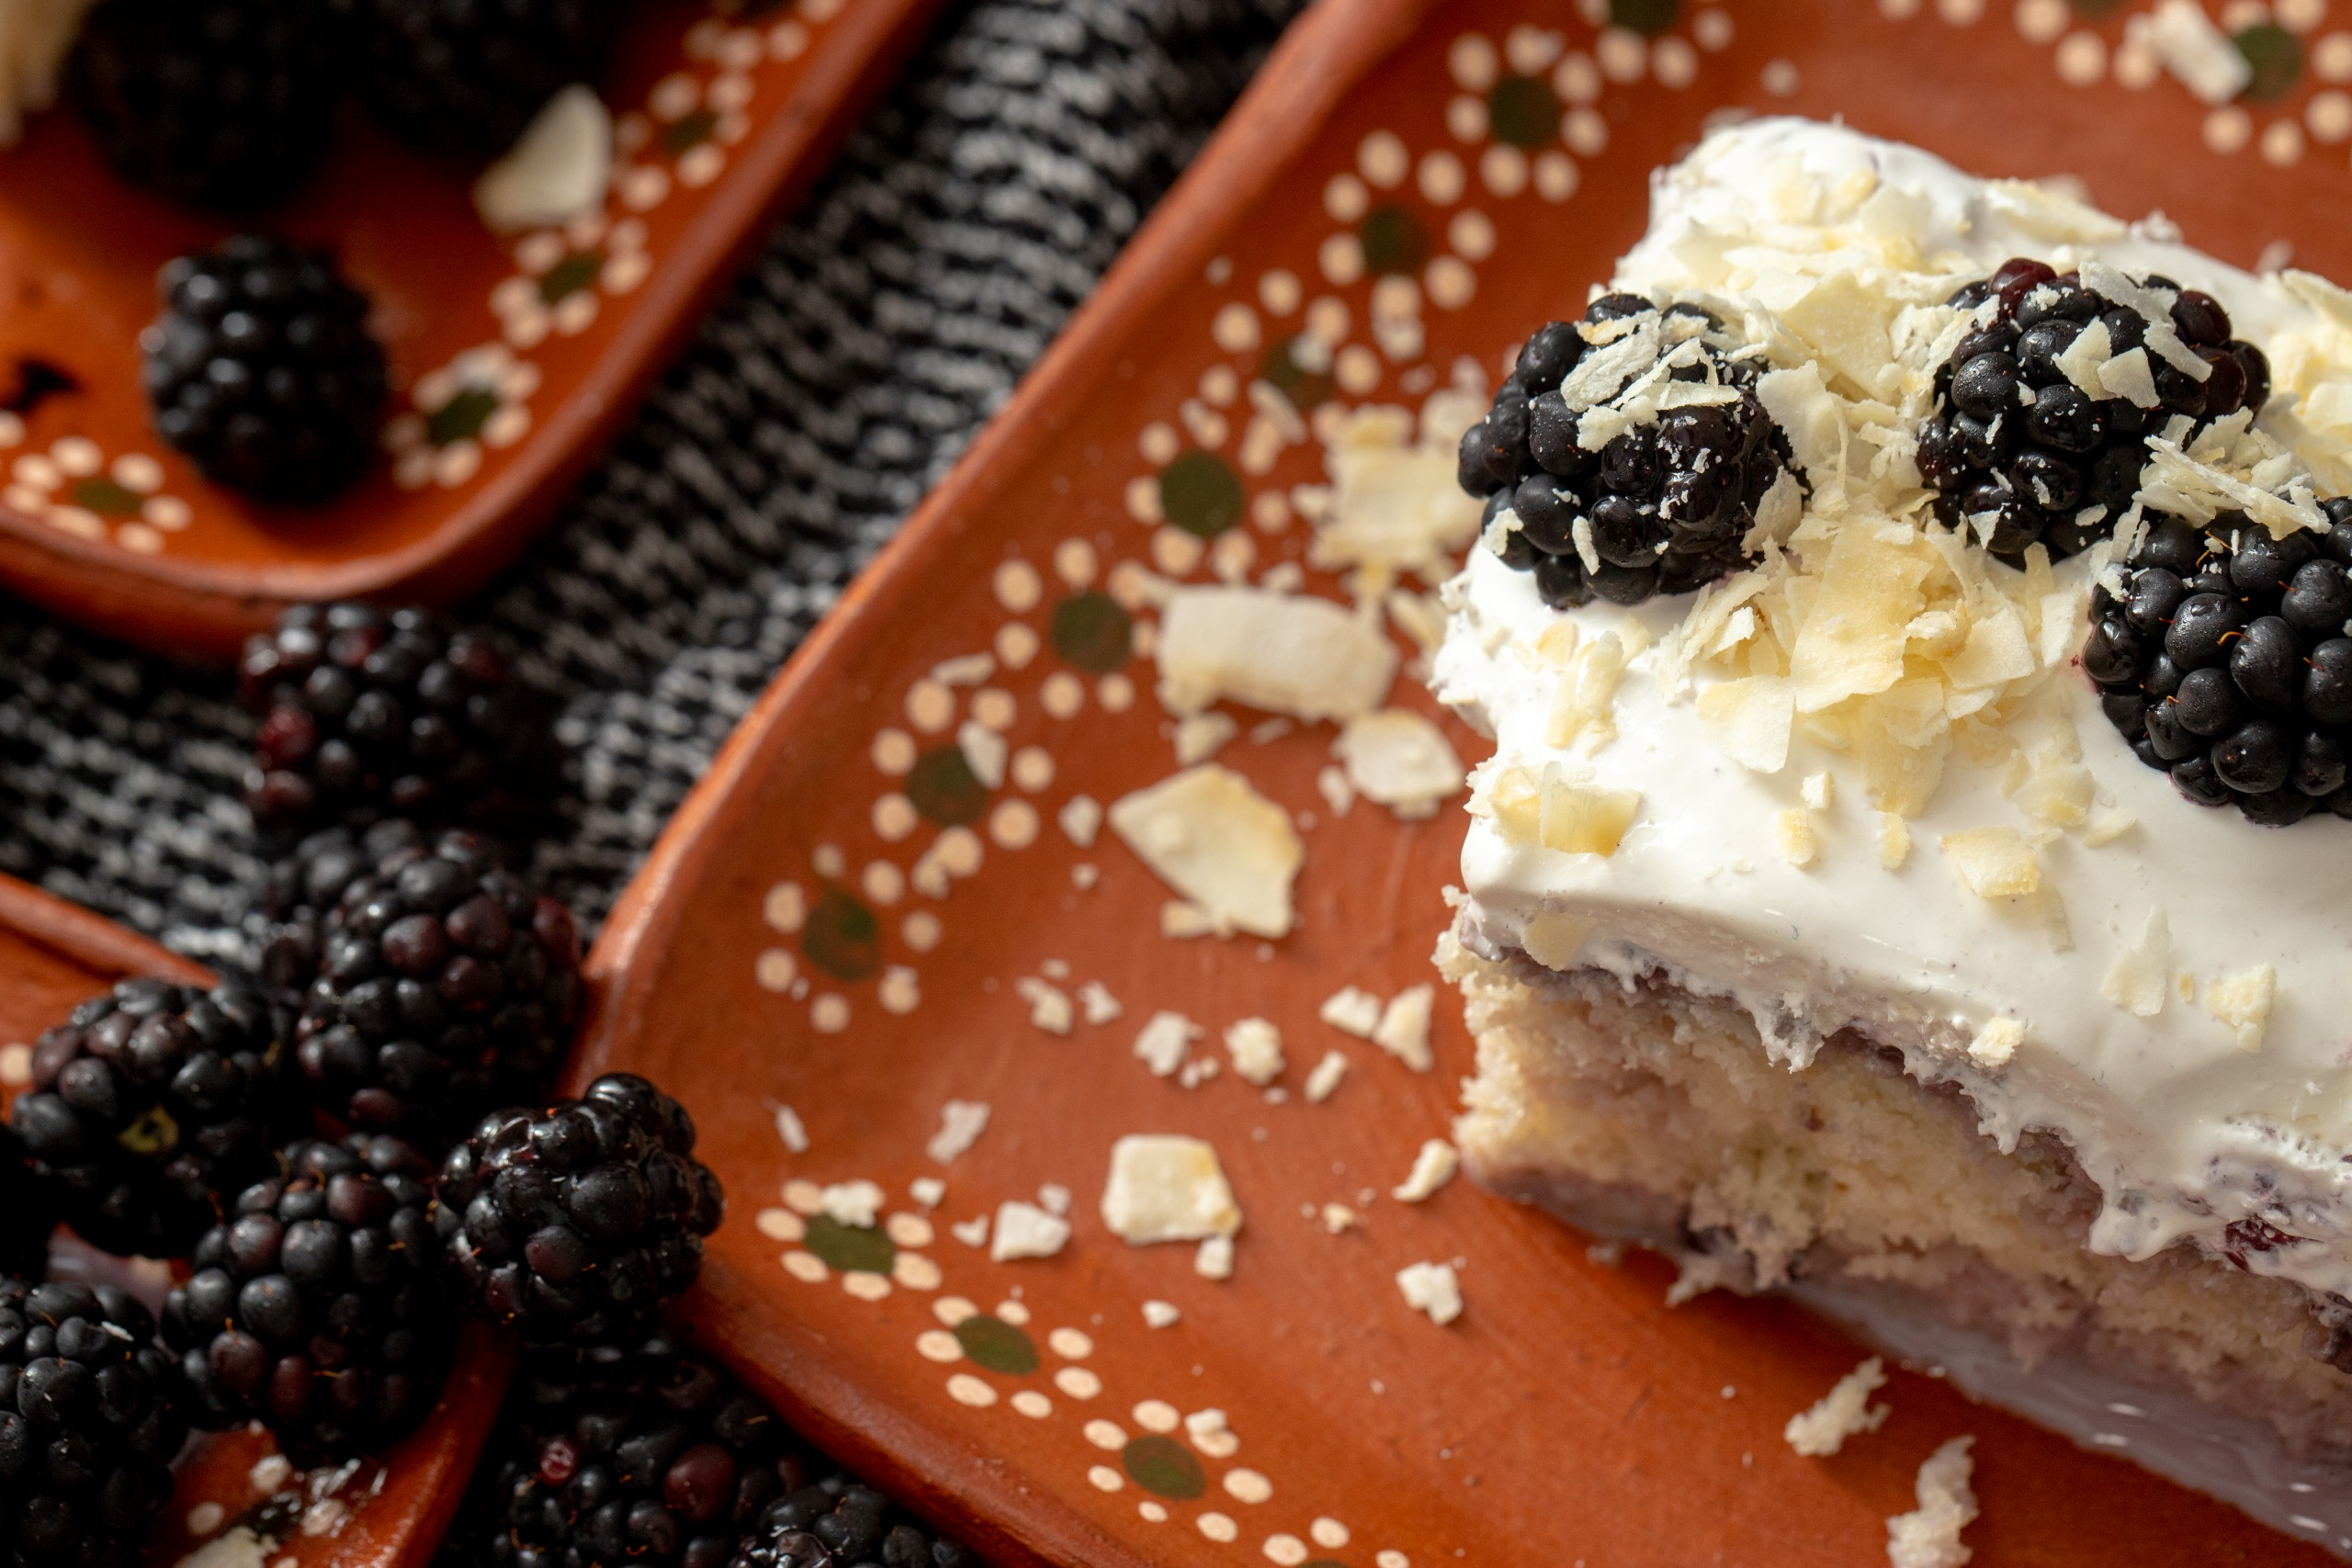 WHAT IS A TRES LECHES CAKE?